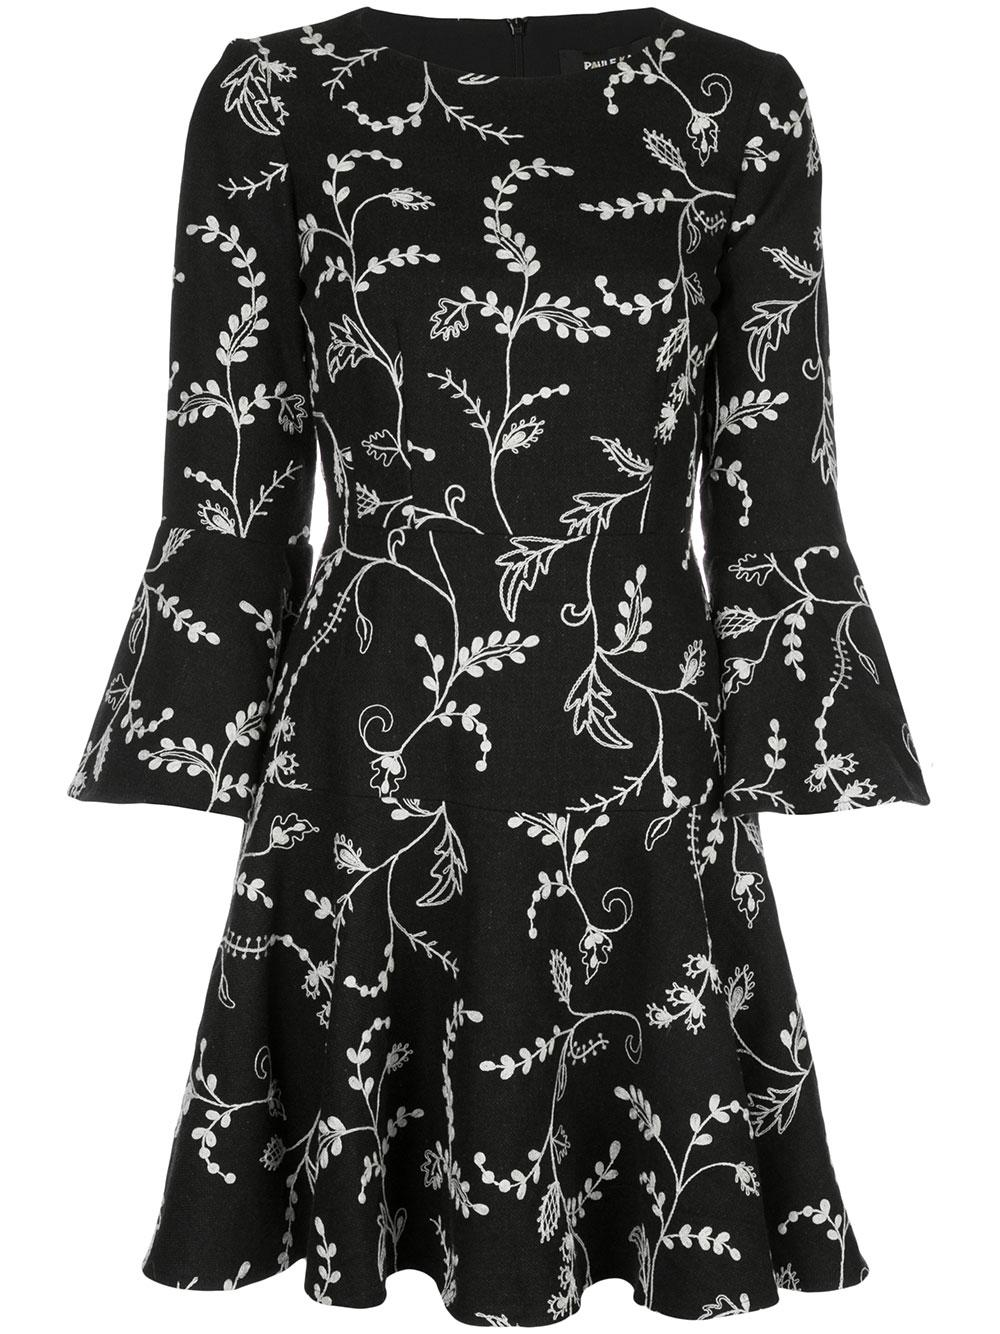 3/4 Sleeve Floral Print Dress With Ruffle Hem